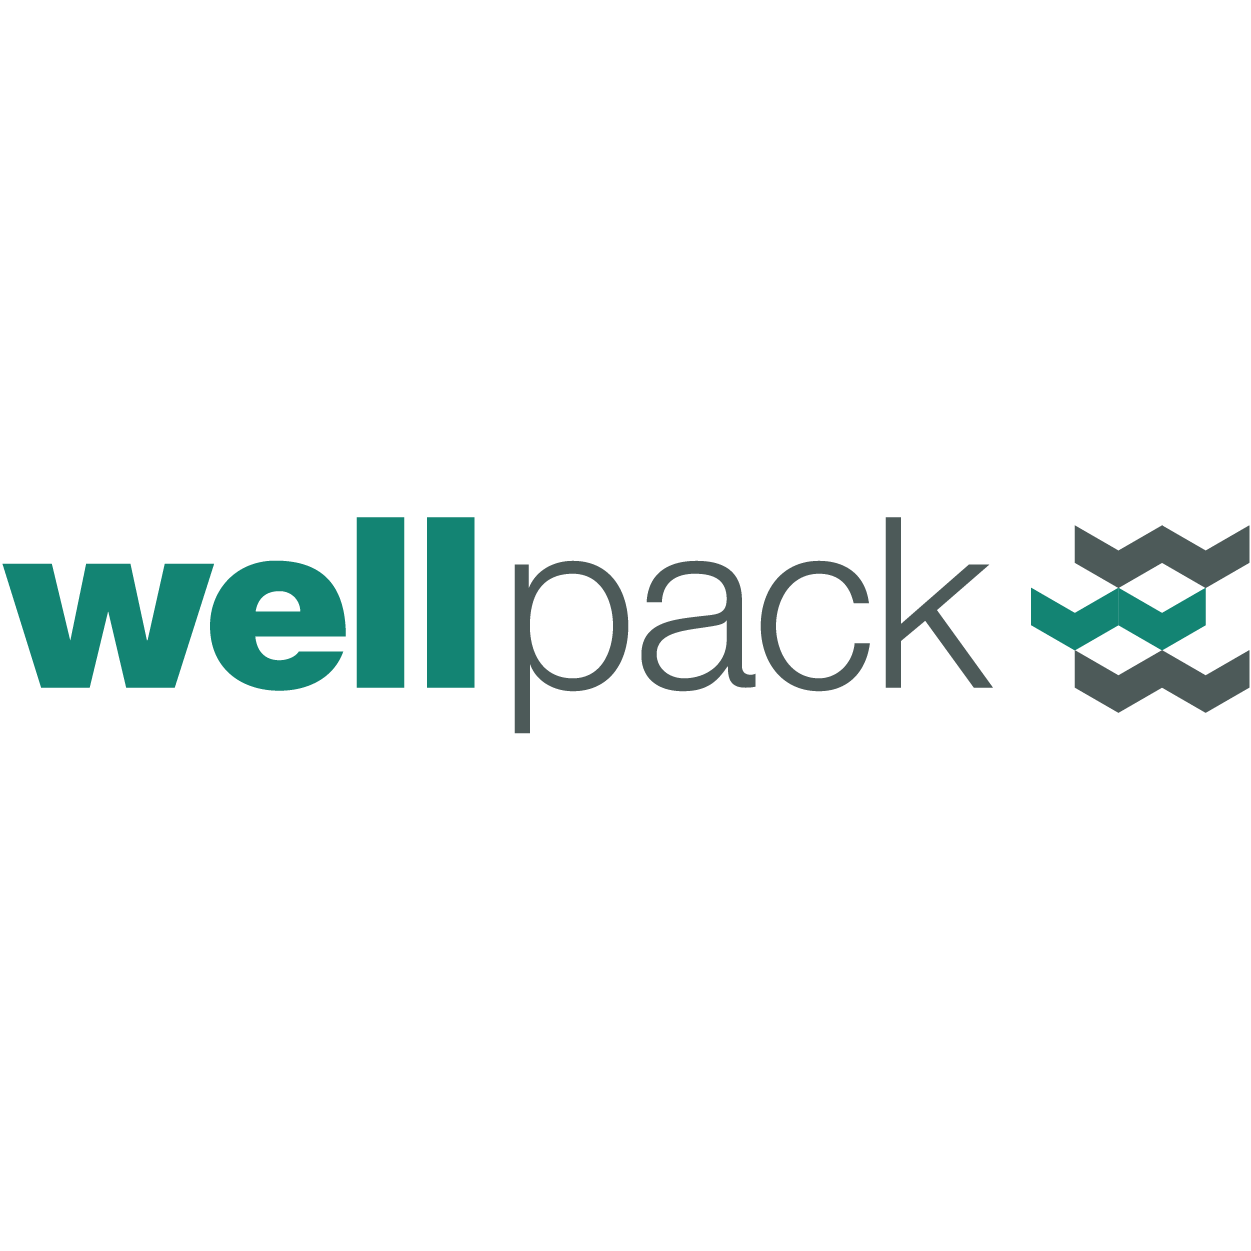 wellpack-color-square